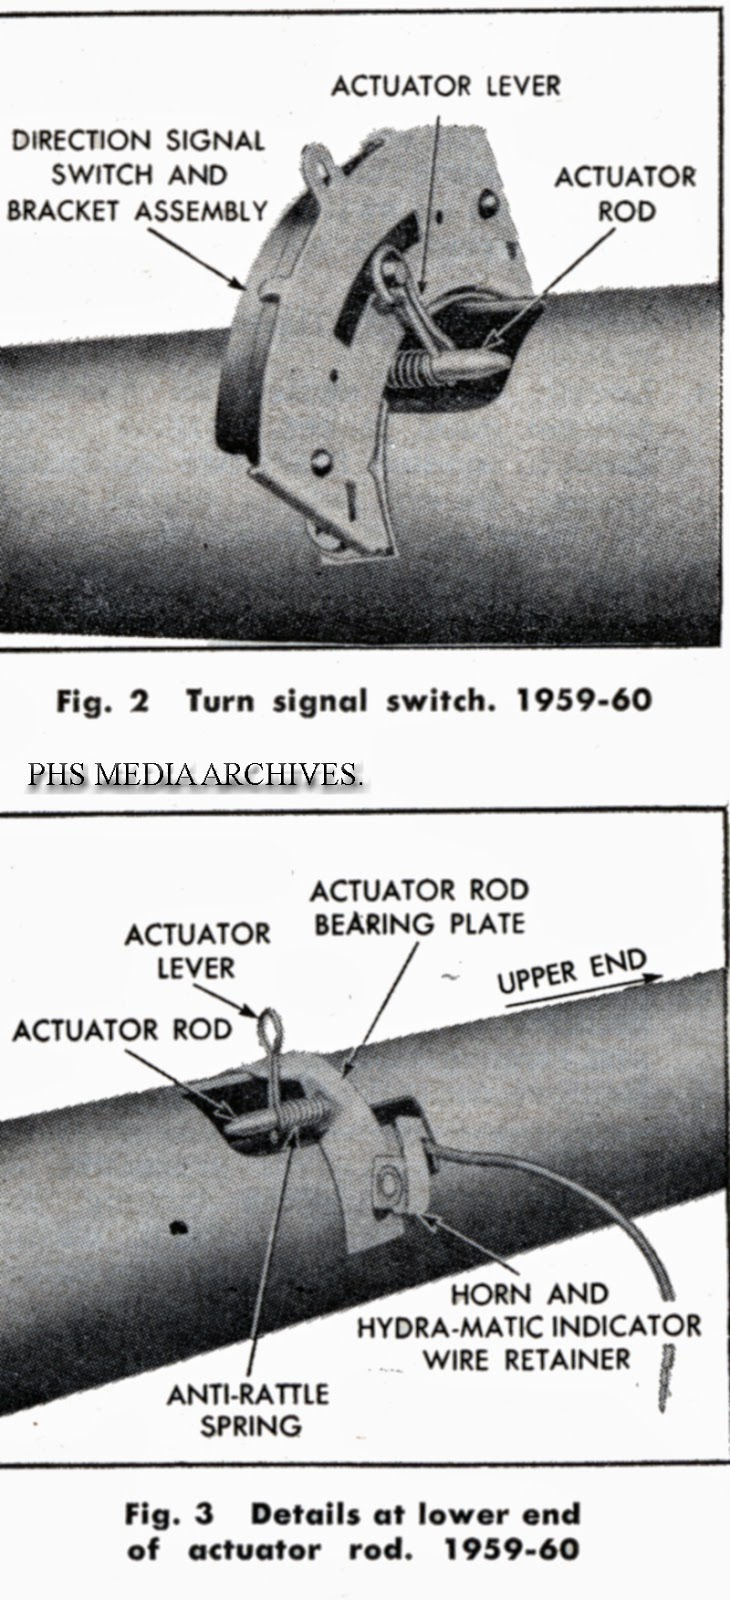 medium resolution of 1959 60 switch is relatively large but easy to change as its completely external